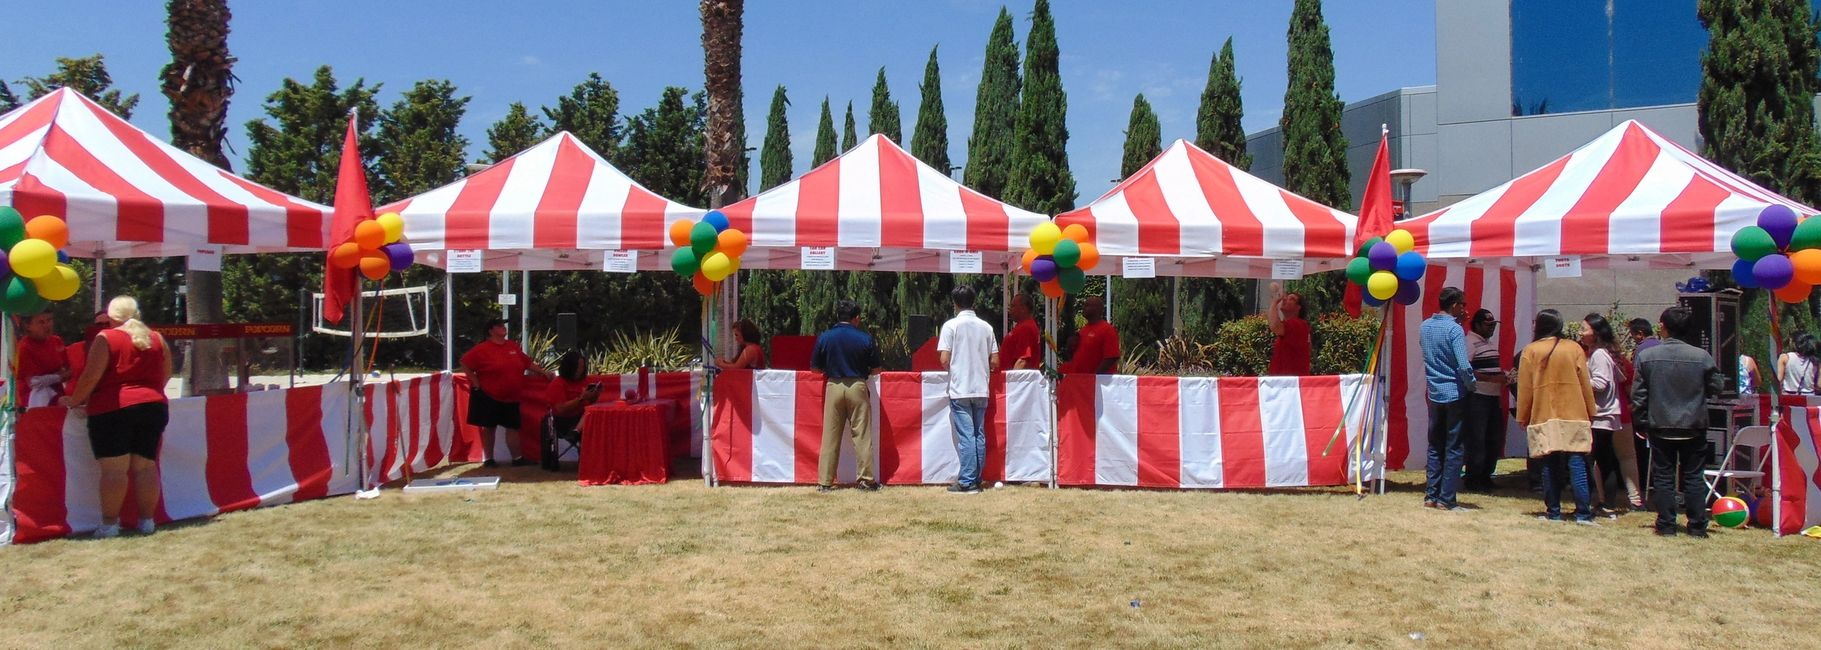 Picnic entertainment, picnic games, games for picnics, corporate picnic games, company picnic games